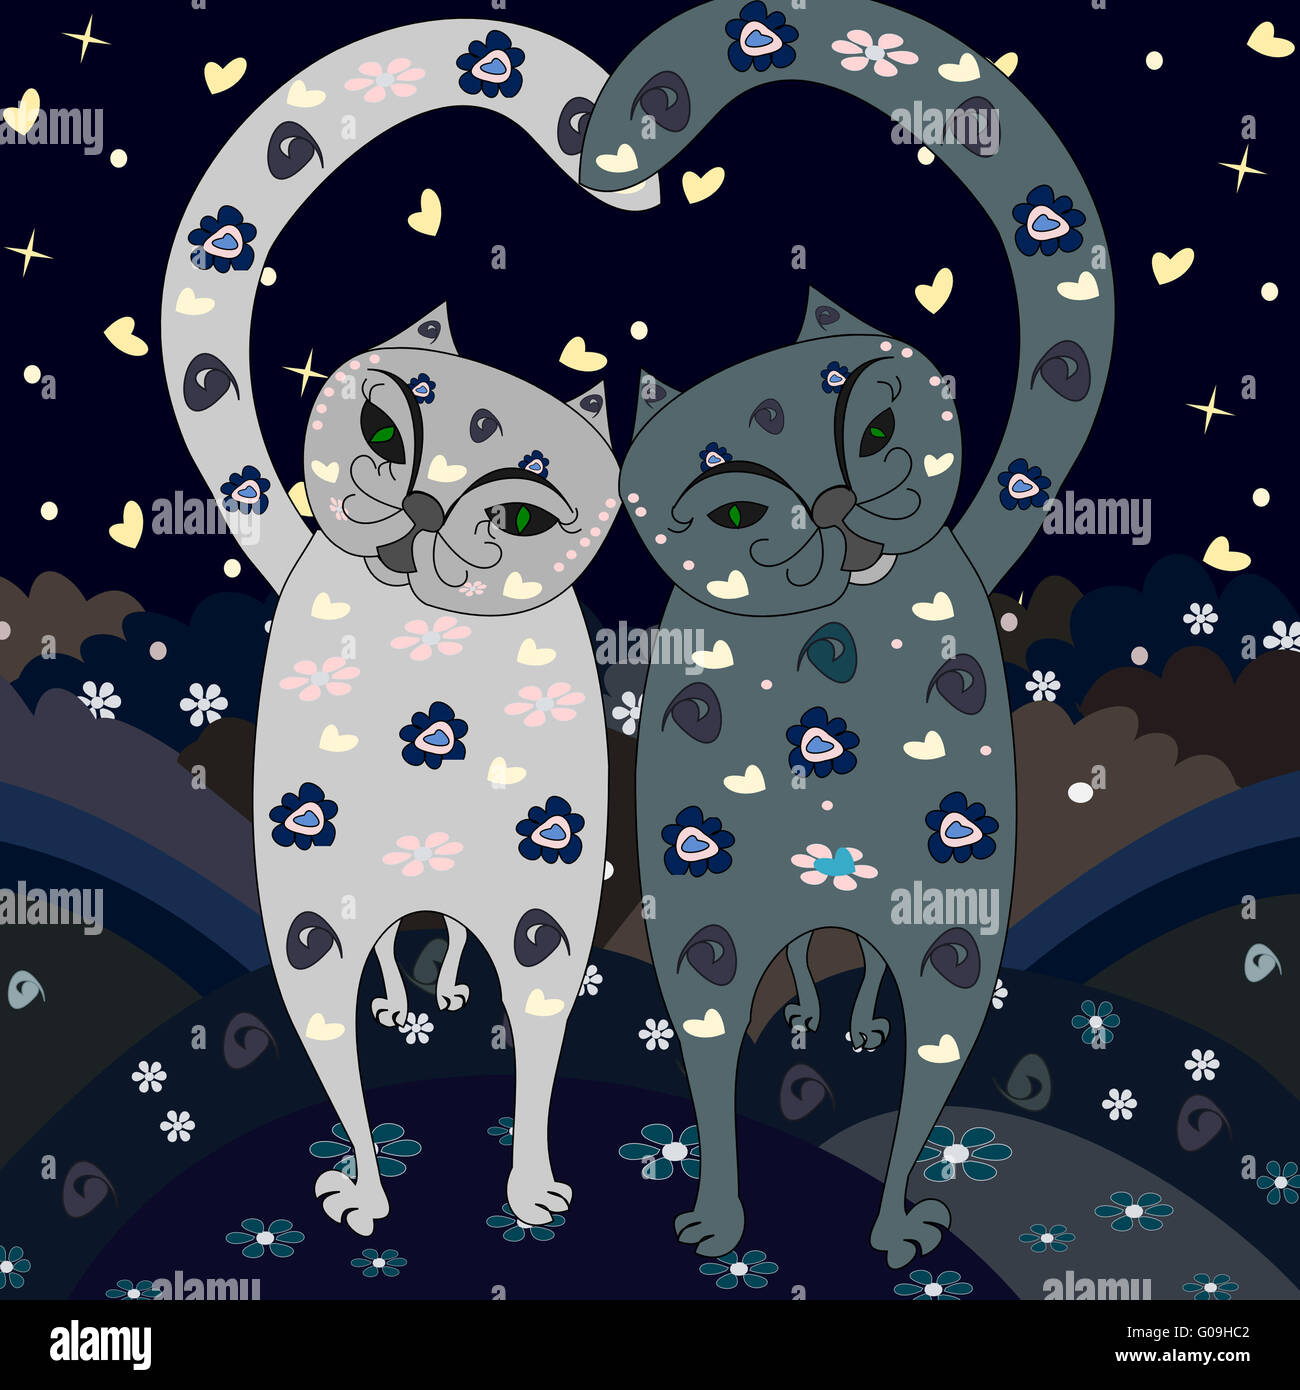 Stylish love cats go together - Stock Image